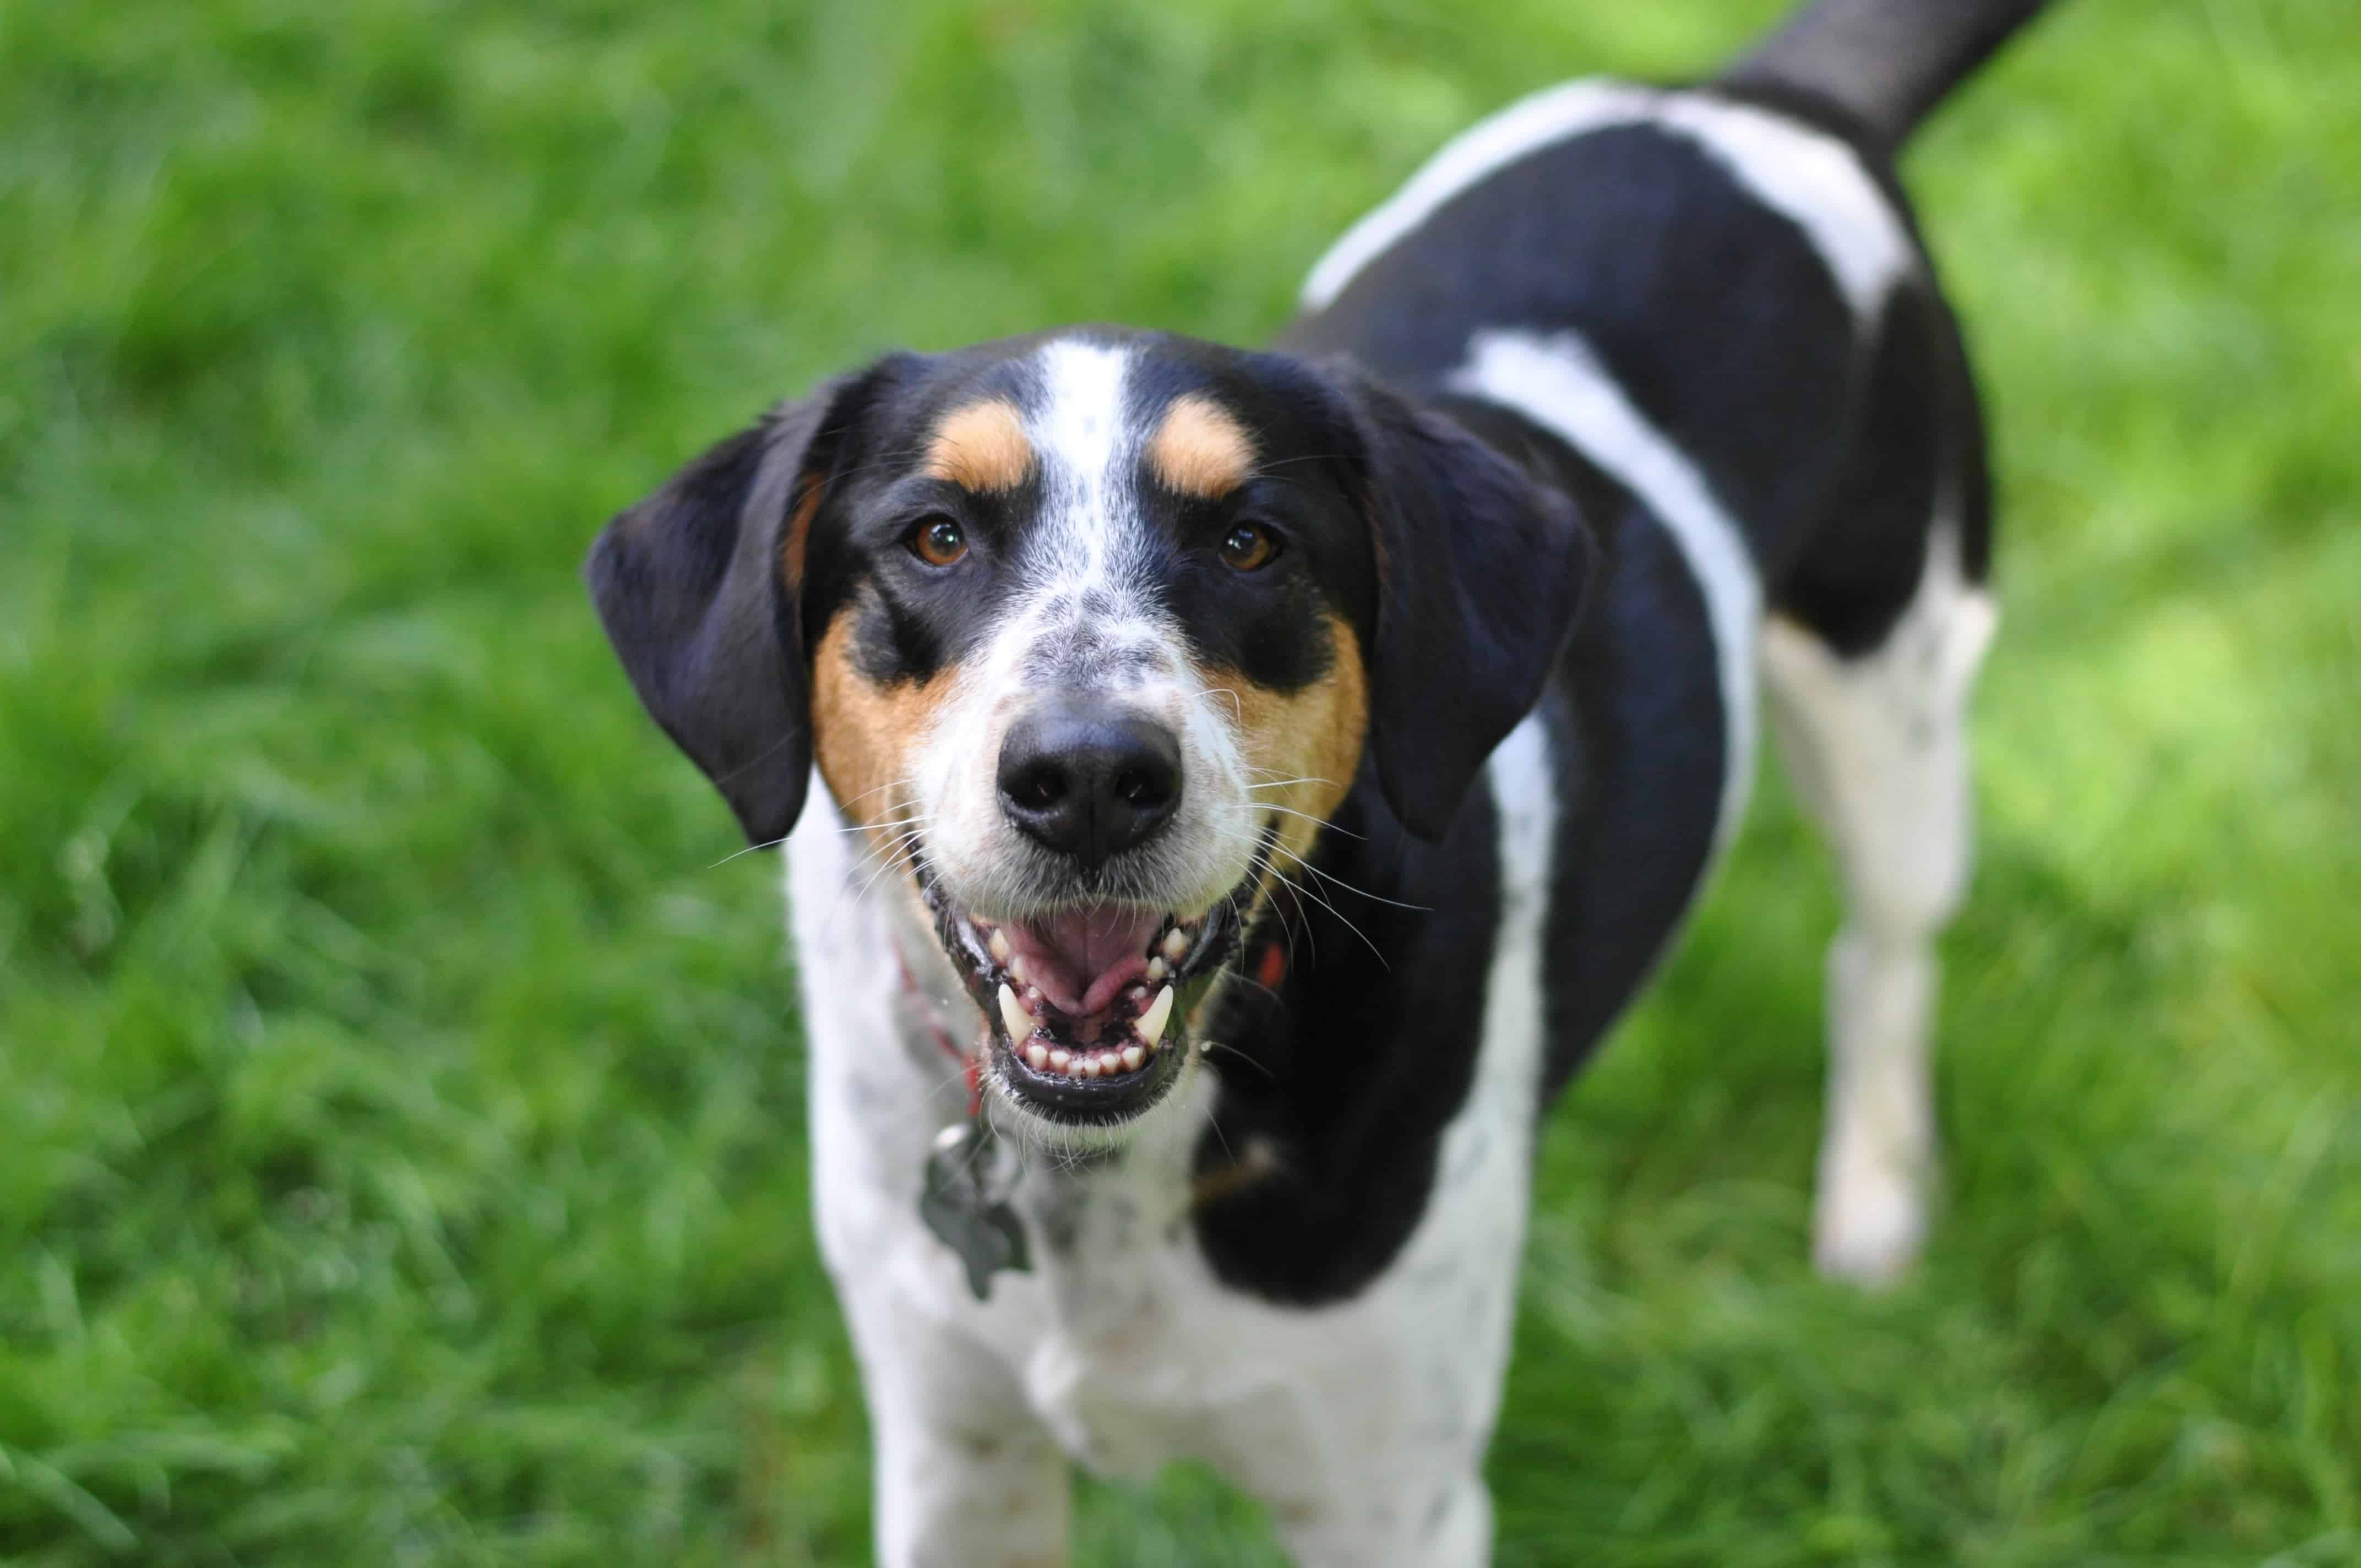 Smiling dog looking at the camera with green grass in the background.